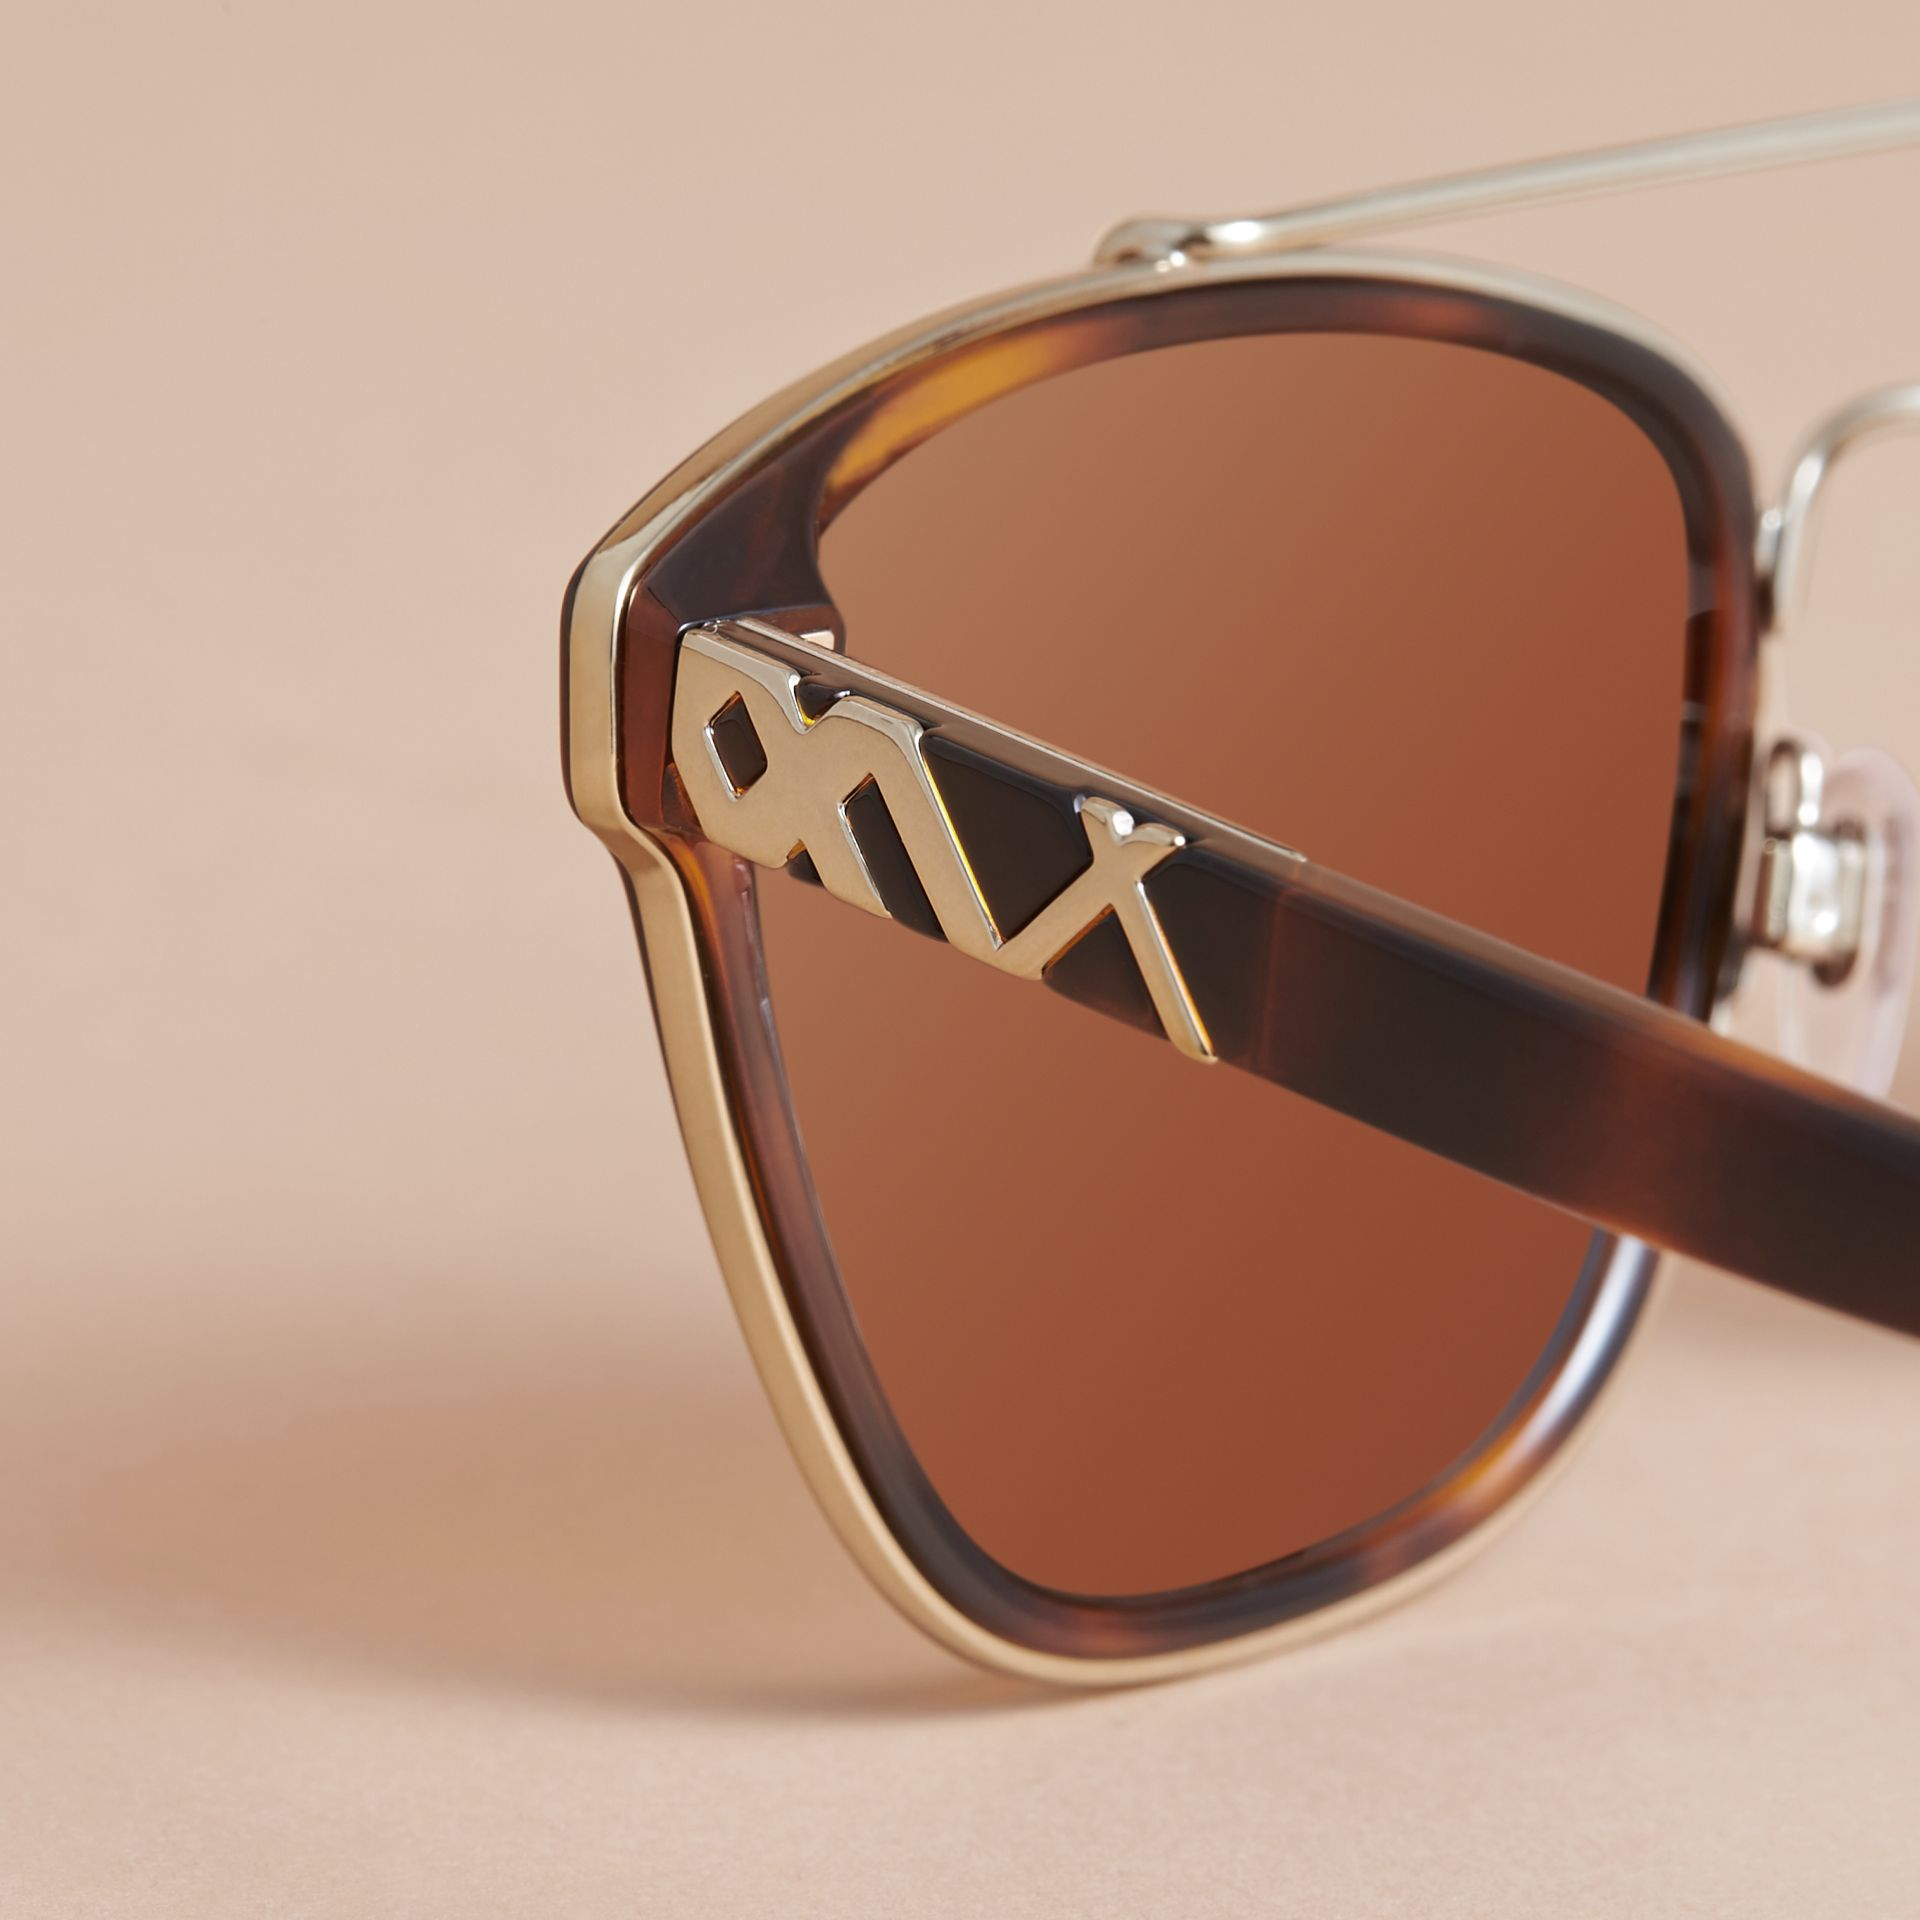 Top Bar Square Frame Sunglasses in Tortoiseshell - gallery image 2